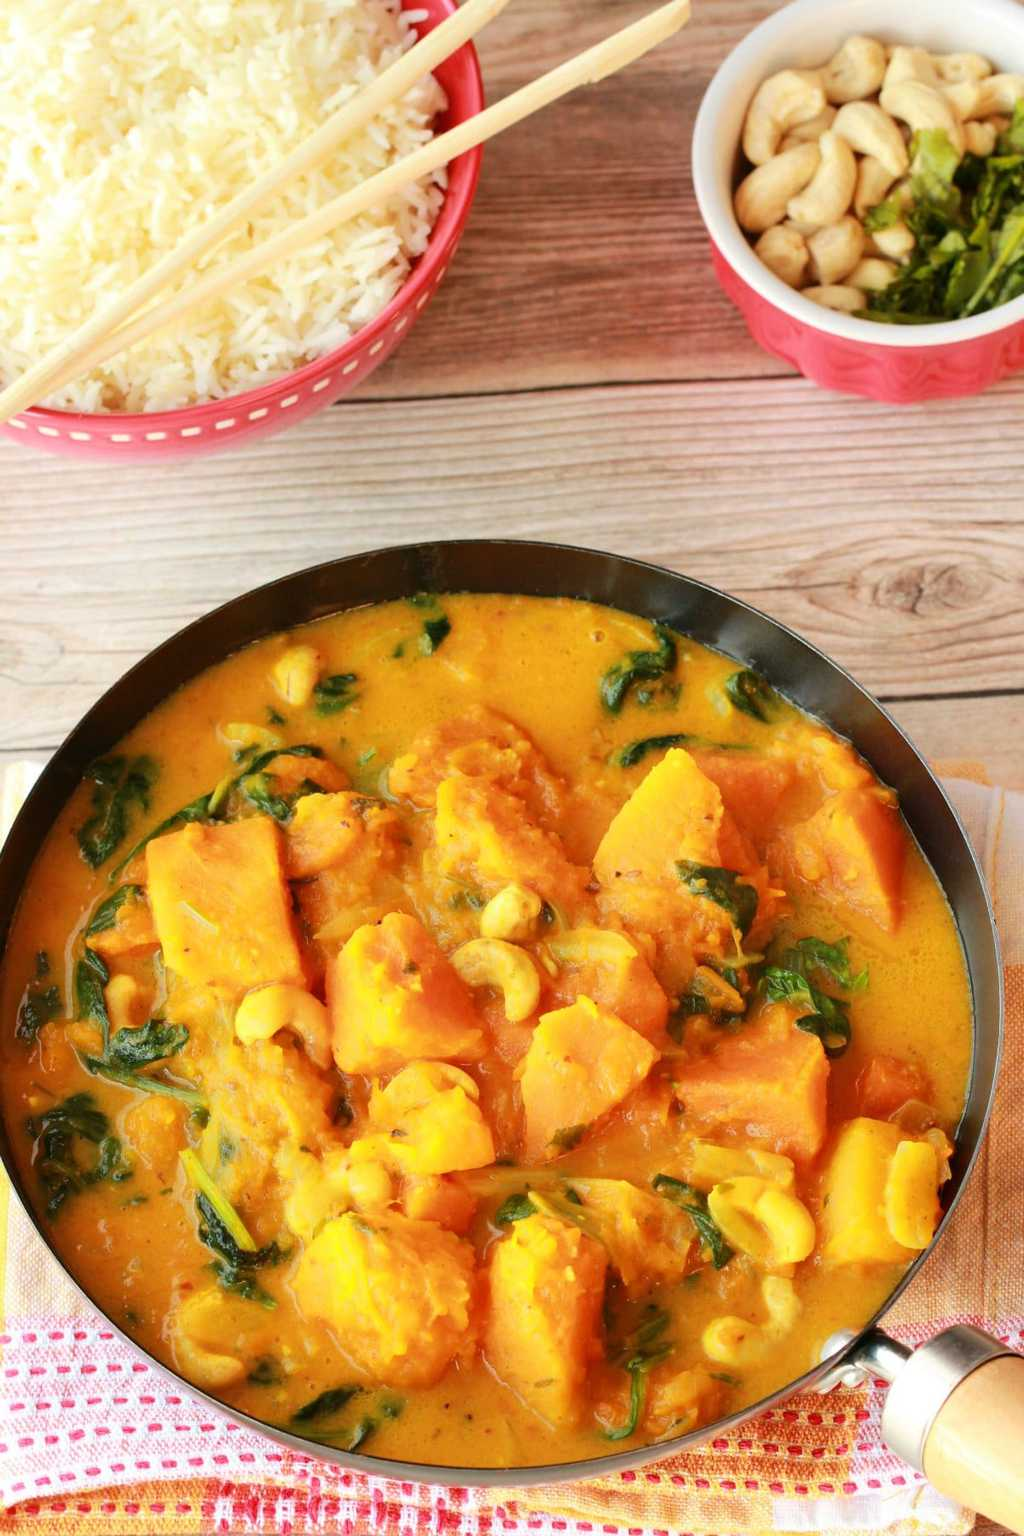 Thai inspired pumpkin curry! This easy 10-ingredient recipe (including the rice!) is ready in less than 45 minutes and makes a fabulously delicious dinner. #vegan #lovingitvegan #vegandinner #entree #glutenfree